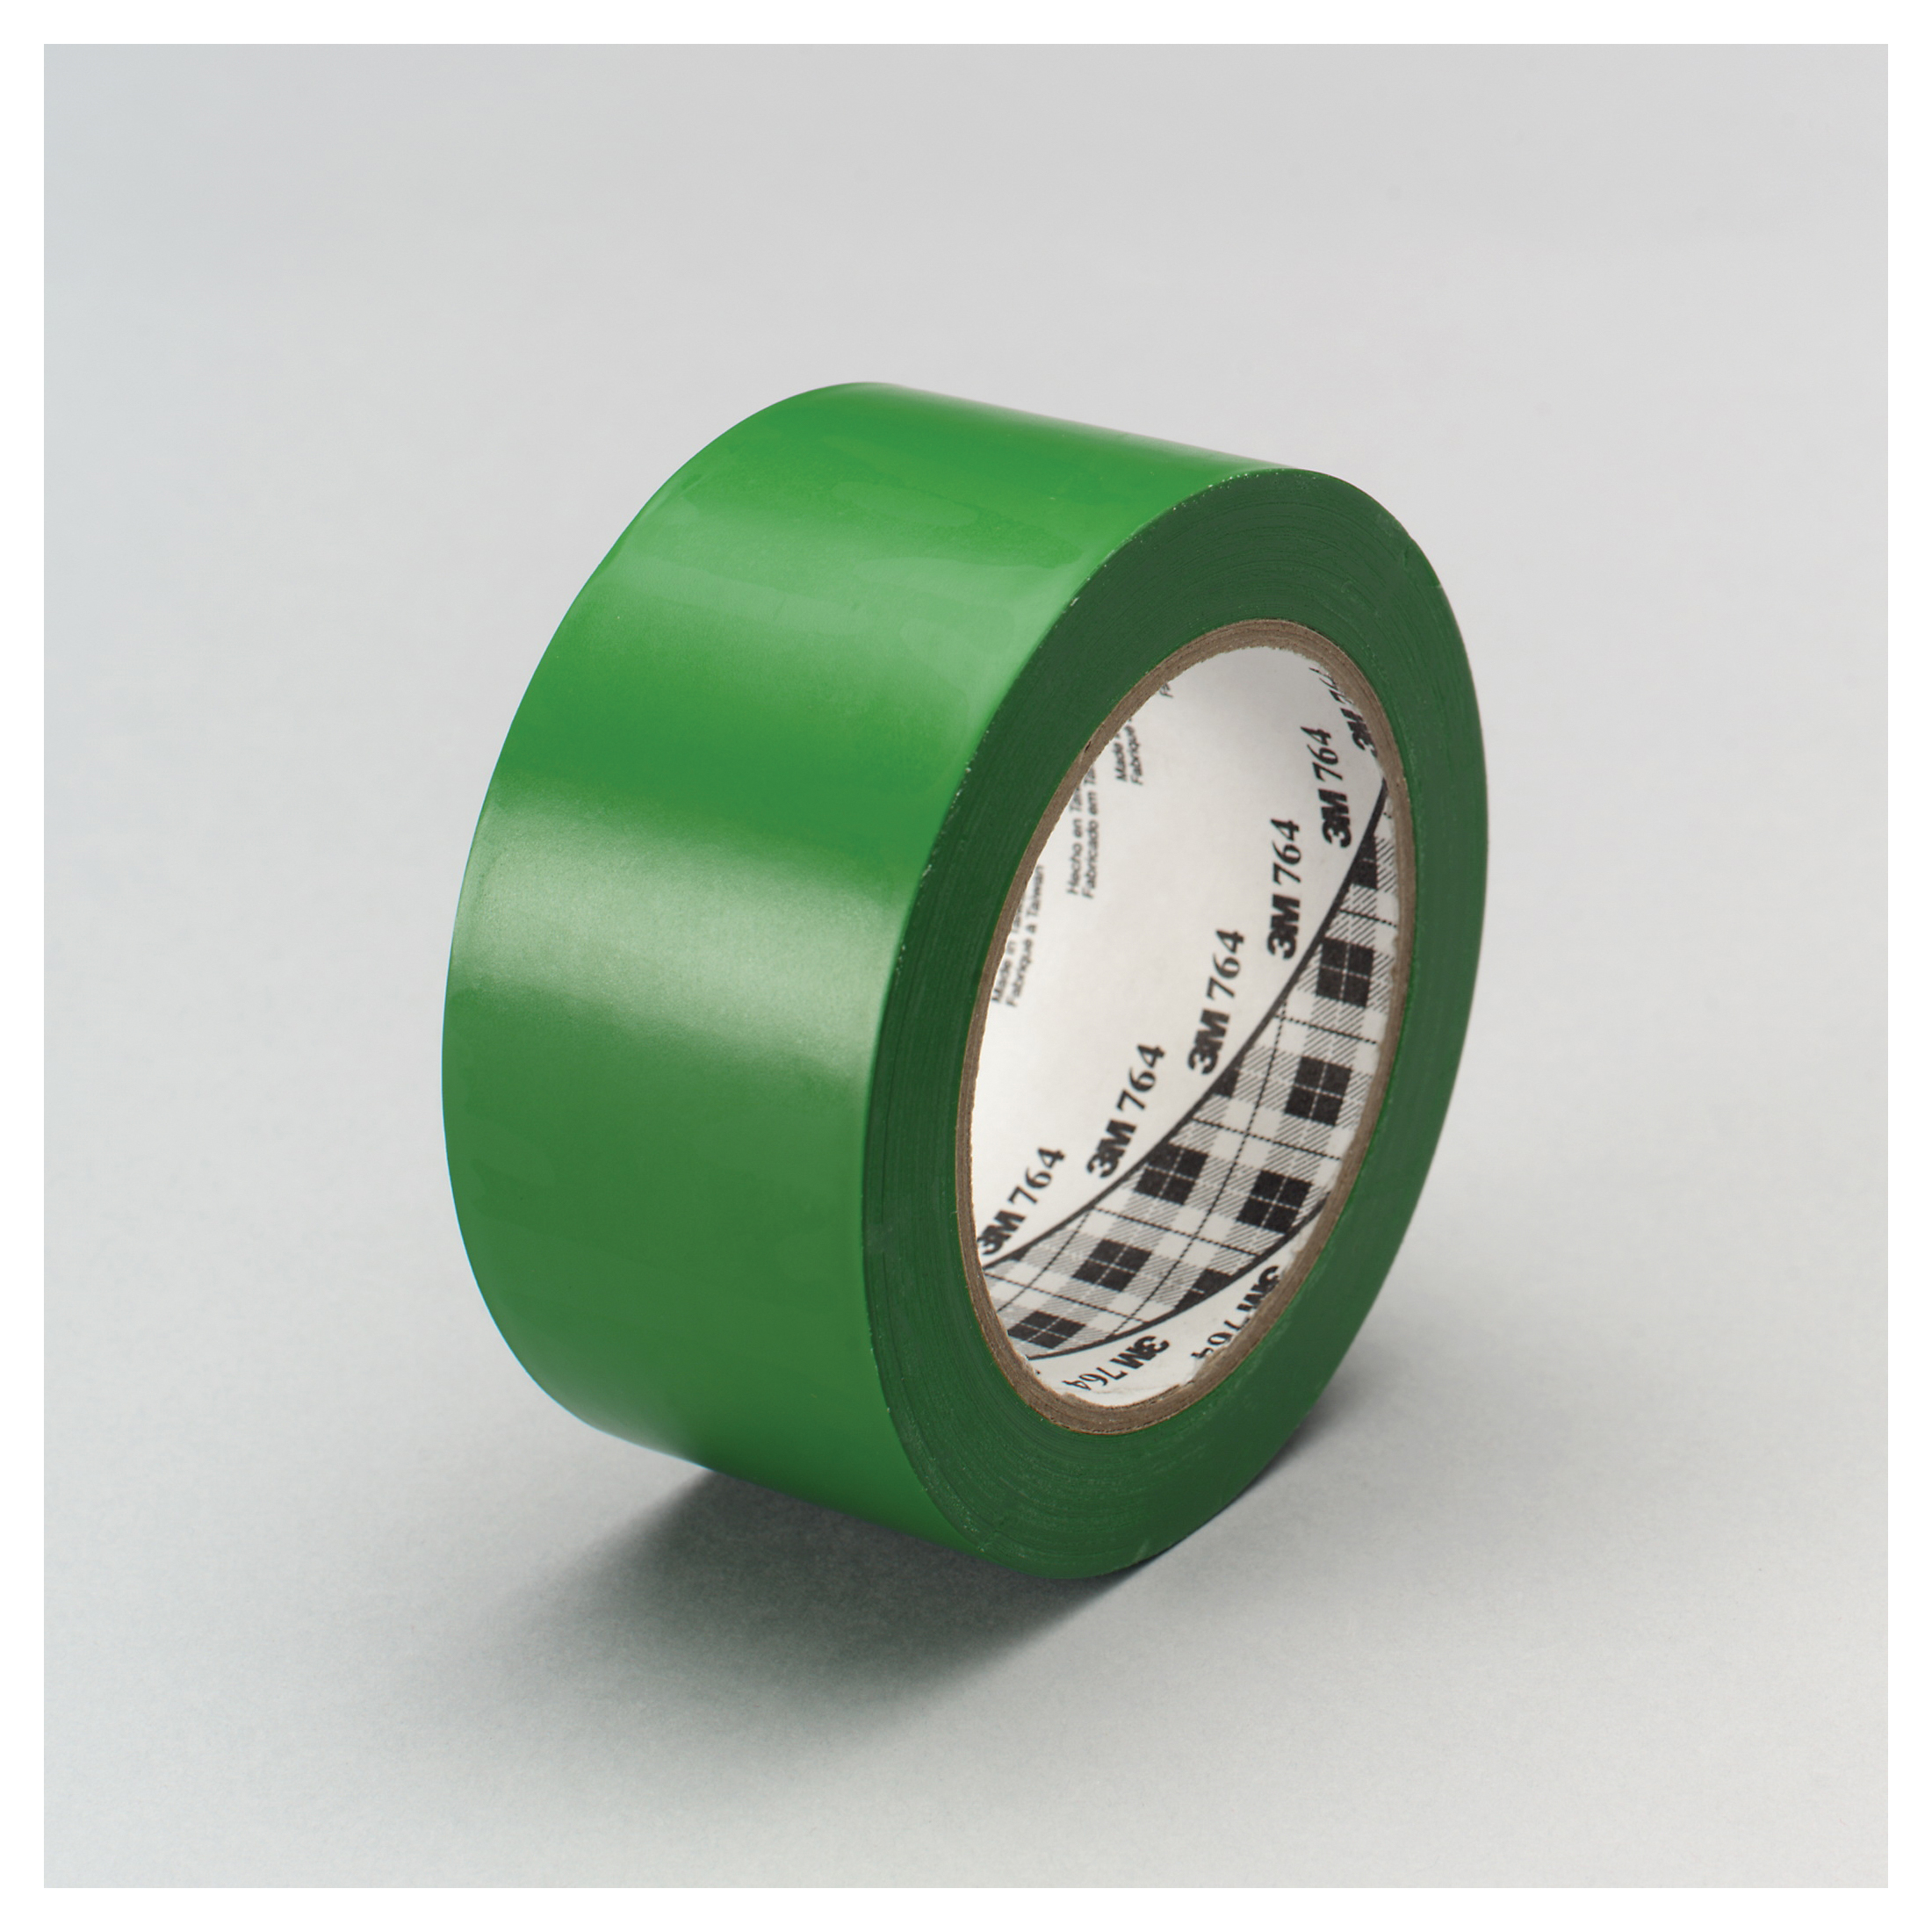 3M™ 021200-43434 General Purpose Vinyl Tape, 36 yd L x 1 in W, 5 mil THK, Rubber Adhesive, Polyvinyl Chloride Backing, Green